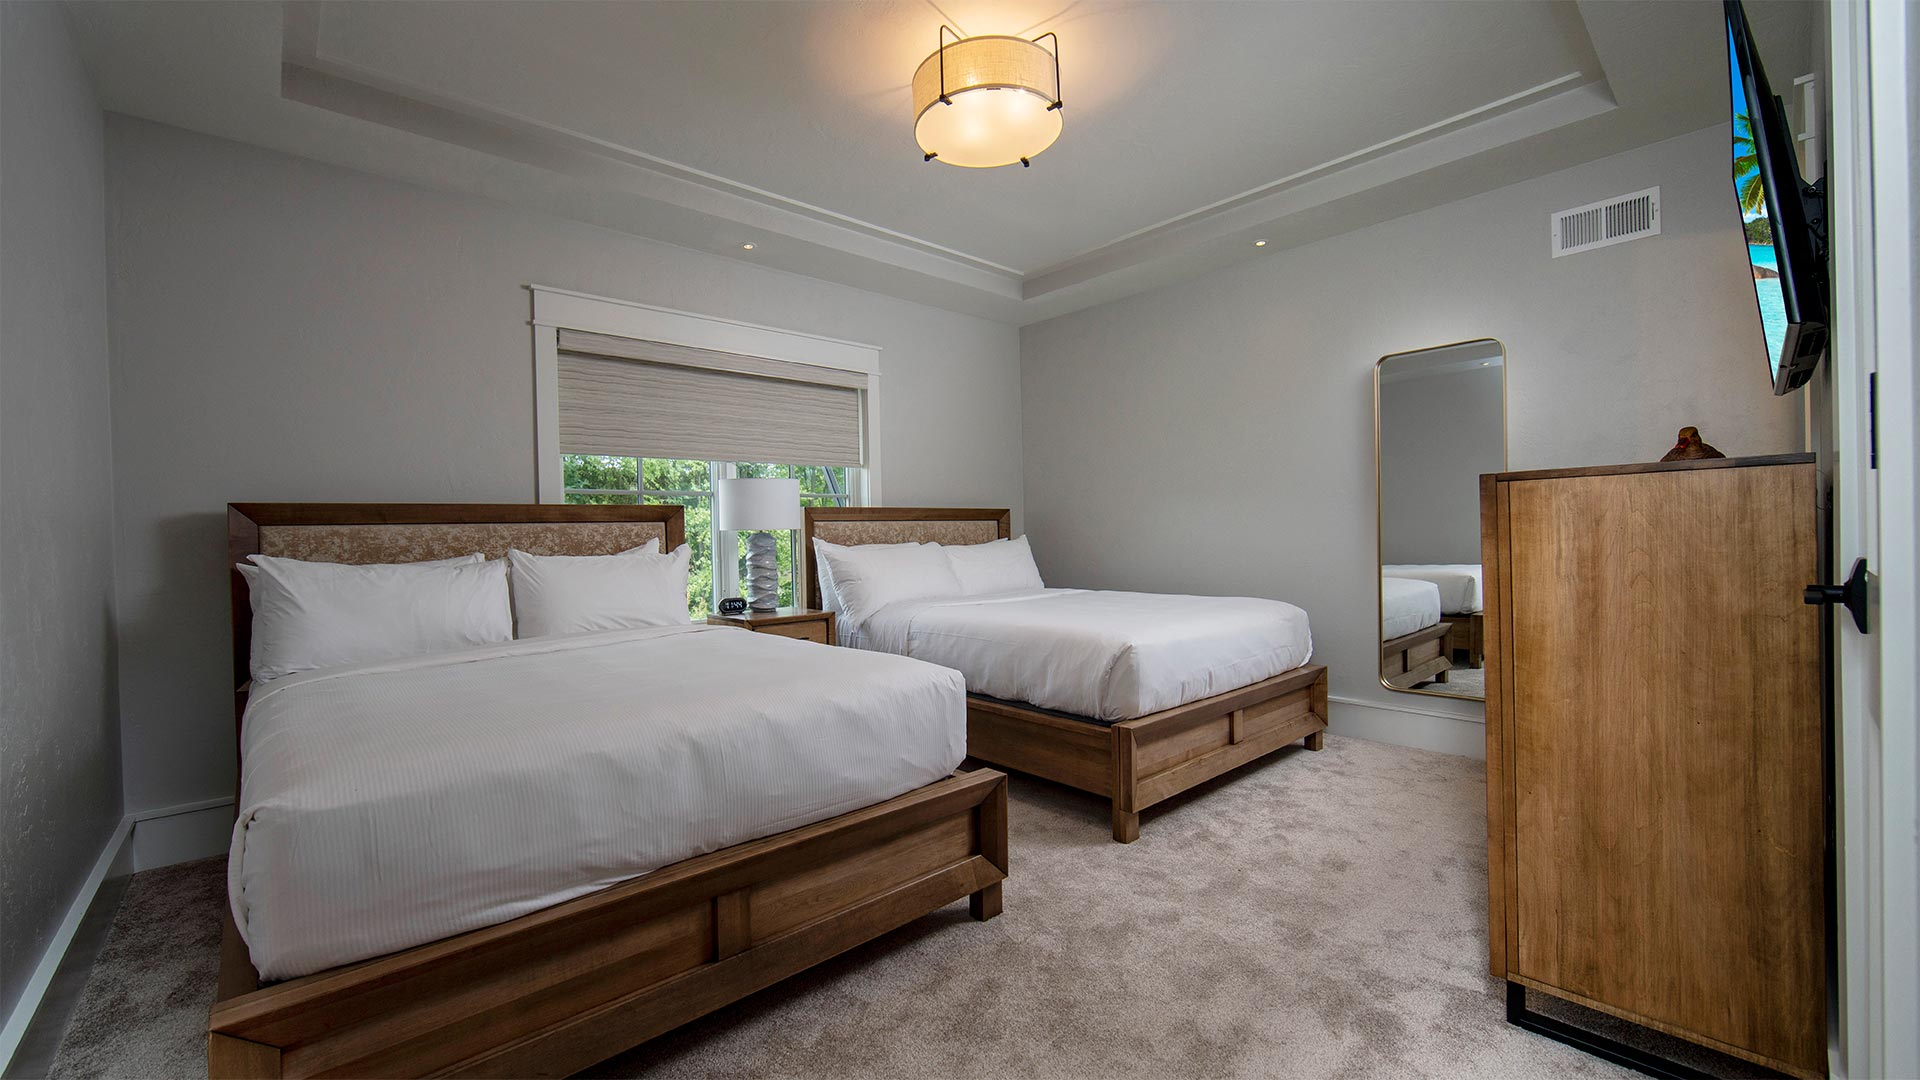 interior shot of a bedroom with two queen beds. Each bed has all white linens and wooden headboard. There is a dresser with a tv mounted overhead across from the beds